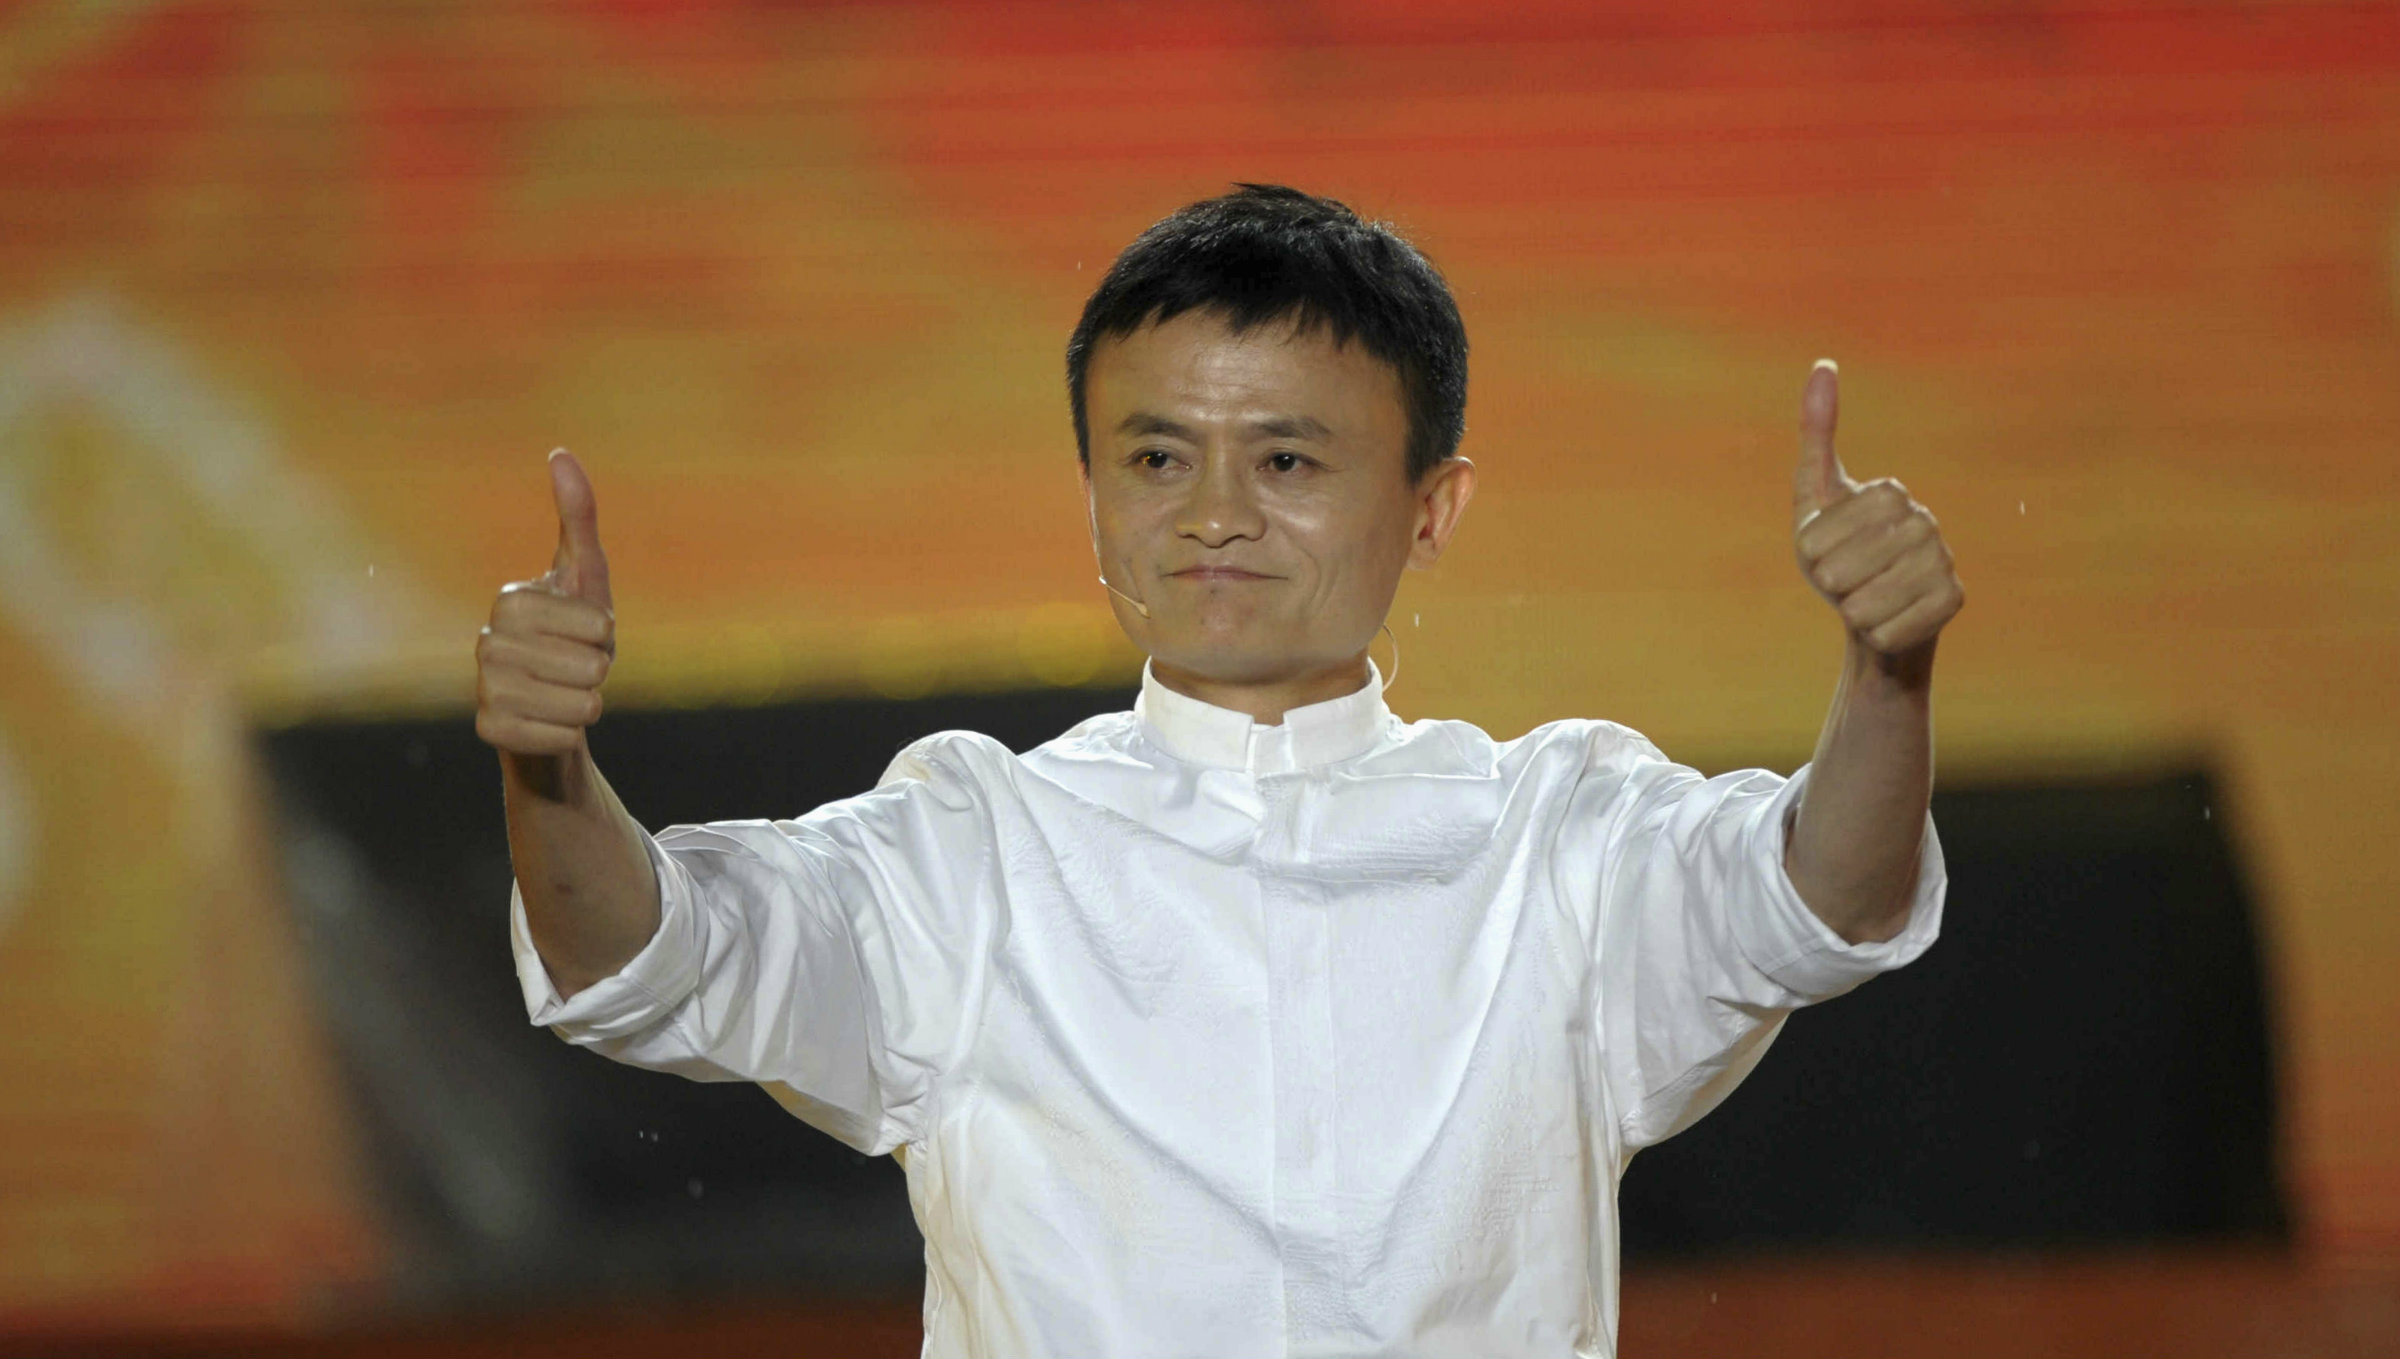 Alibaba founder Jack Ma with thumbs up.